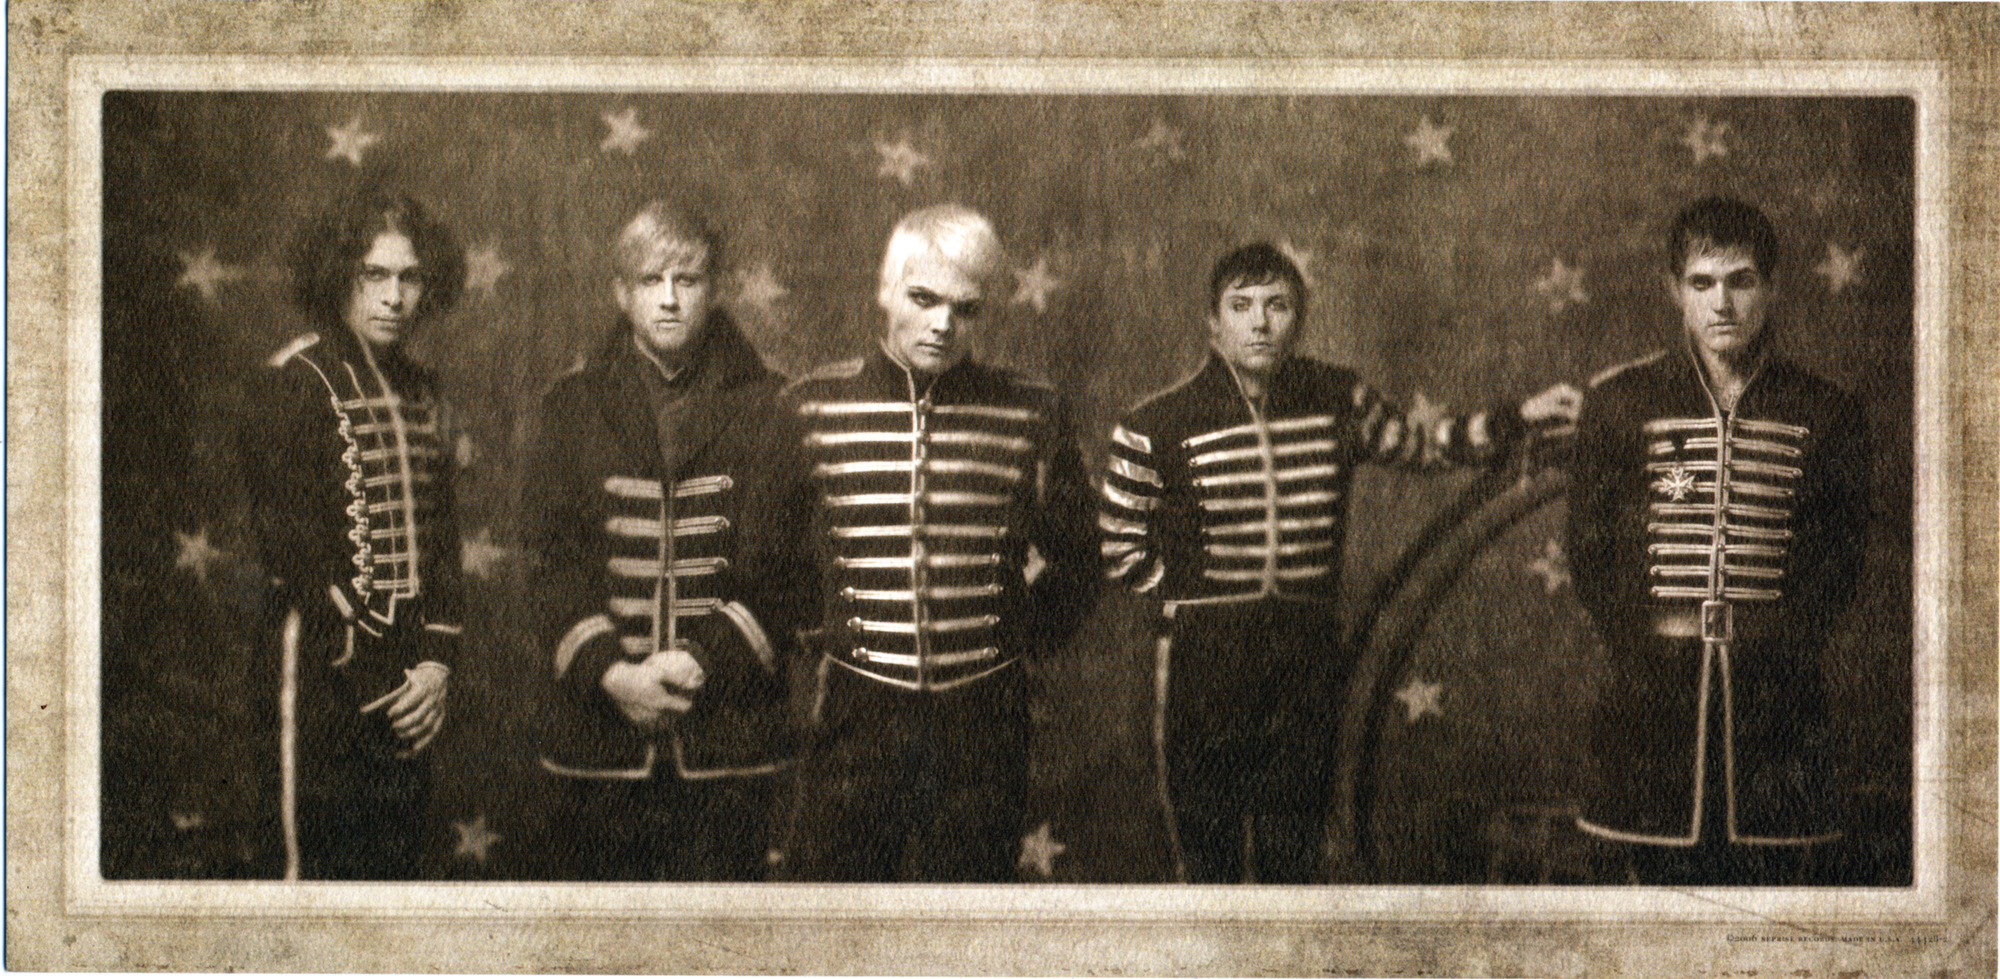 My Chemical Romance: Black Parade Campaign